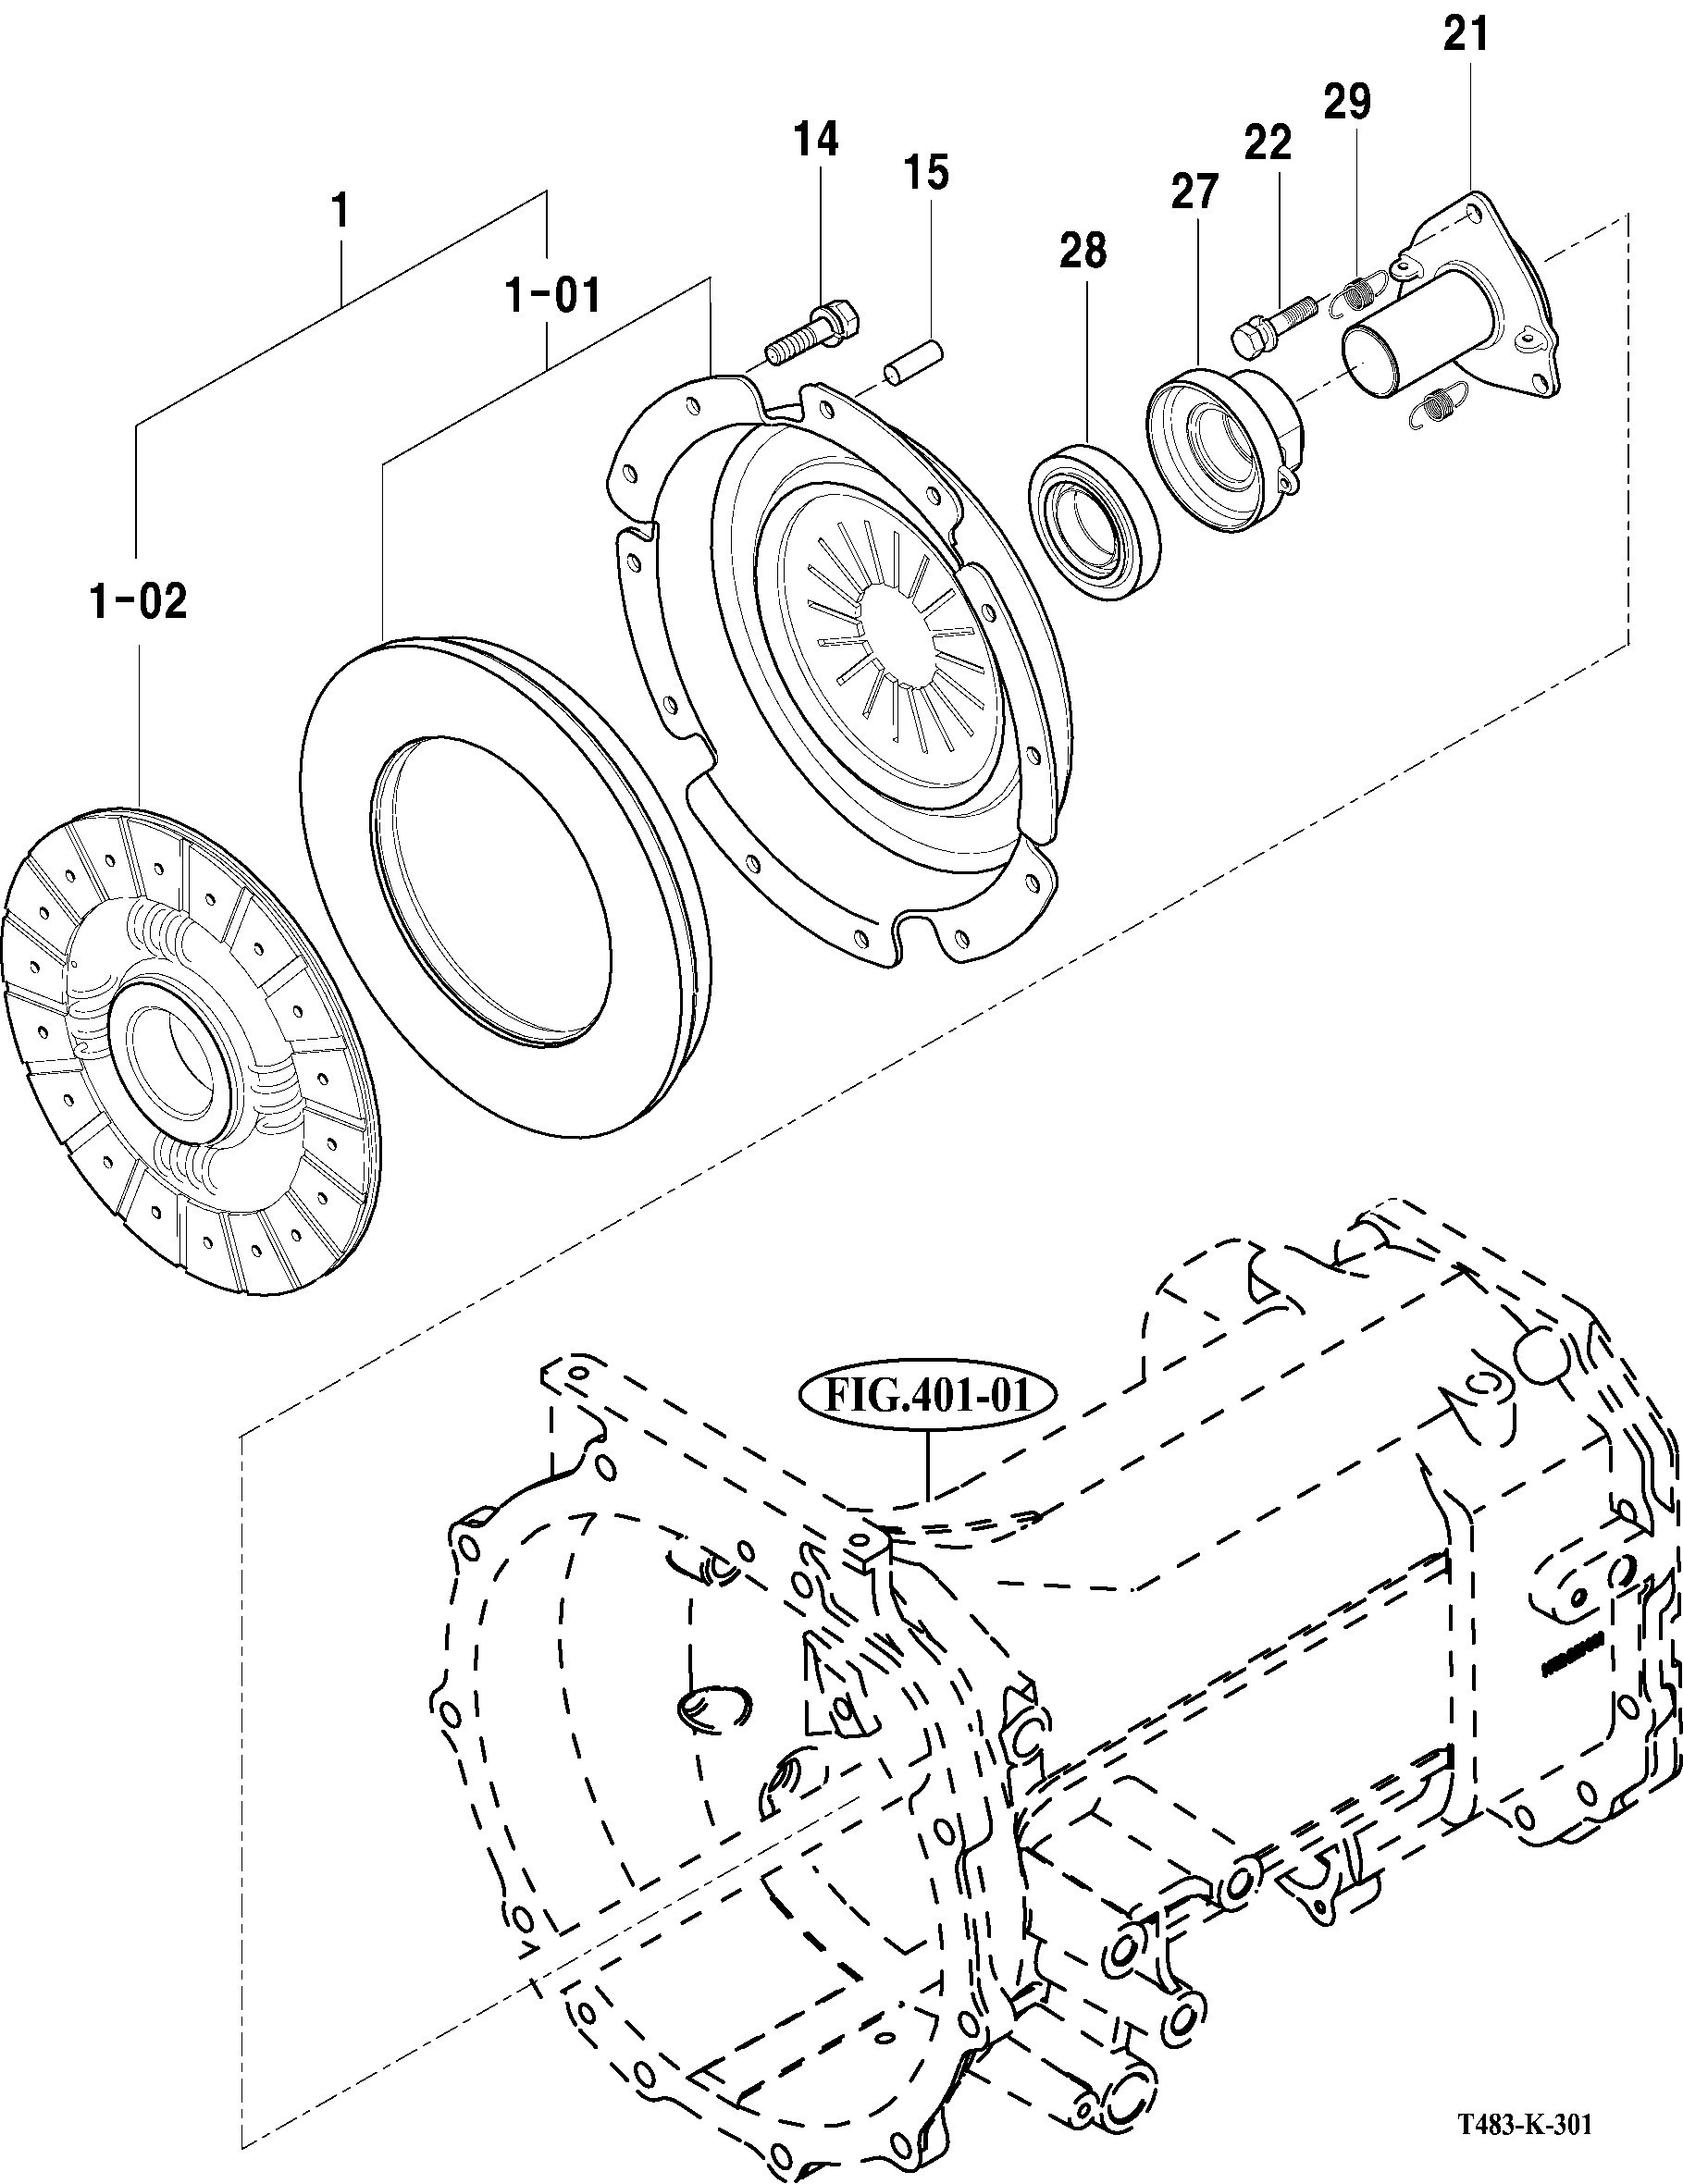 Car Wheel assembly Diagram Car Clutch assembly Diagram Woods O121q 1 Multi Spindle Cutter Wheel Of Car Wheel assembly Diagram